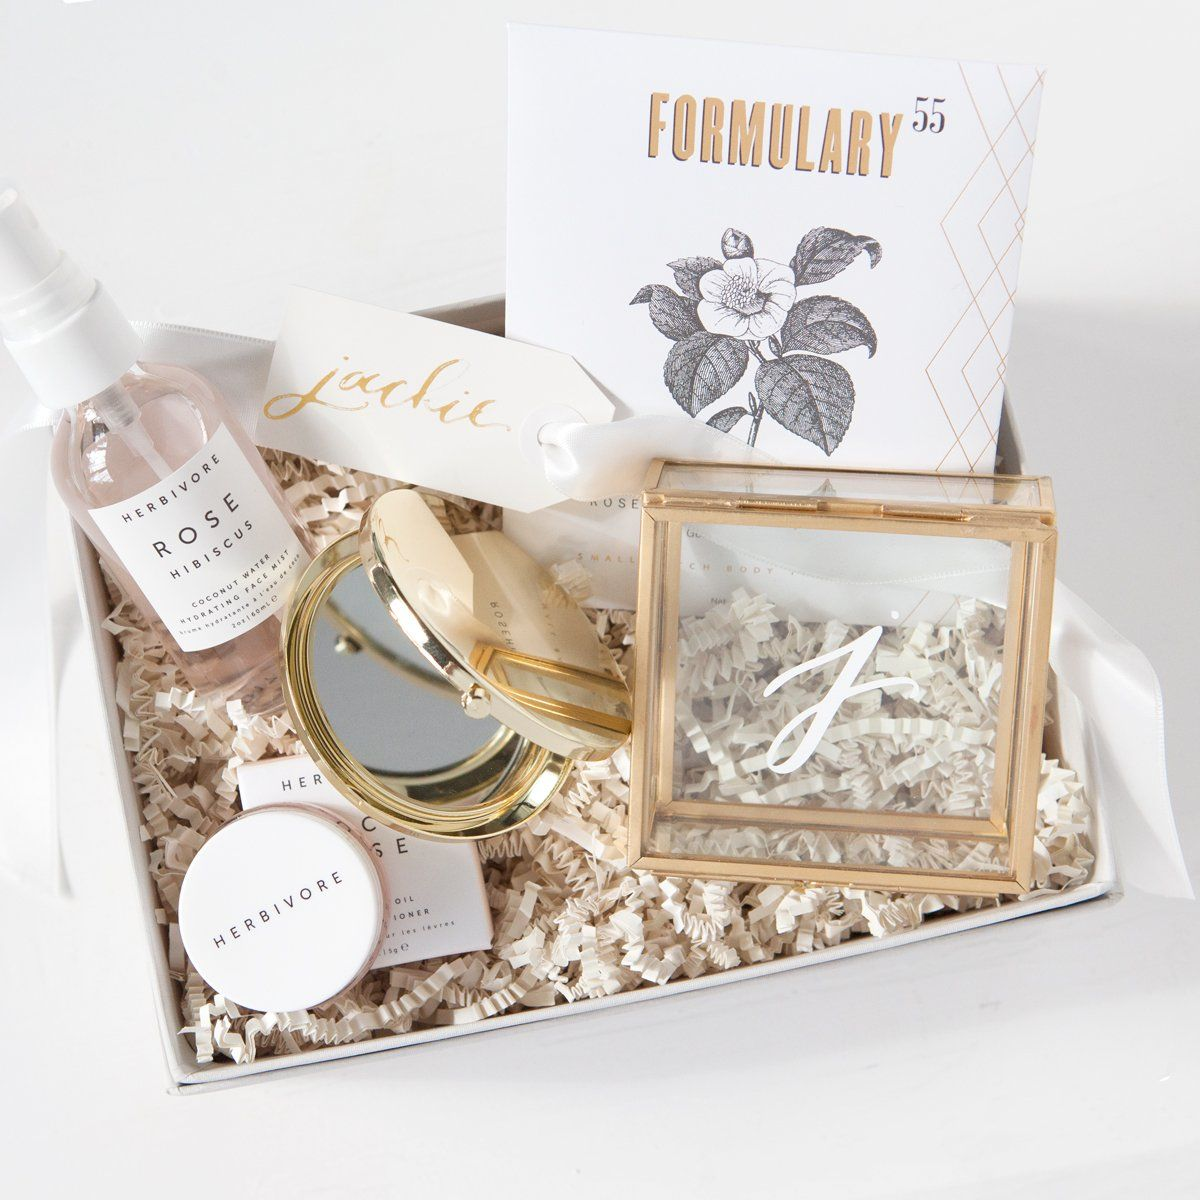 Spa Gifts Relaxation For Wife Mom Her New Bridal Shower Birthday Thank You